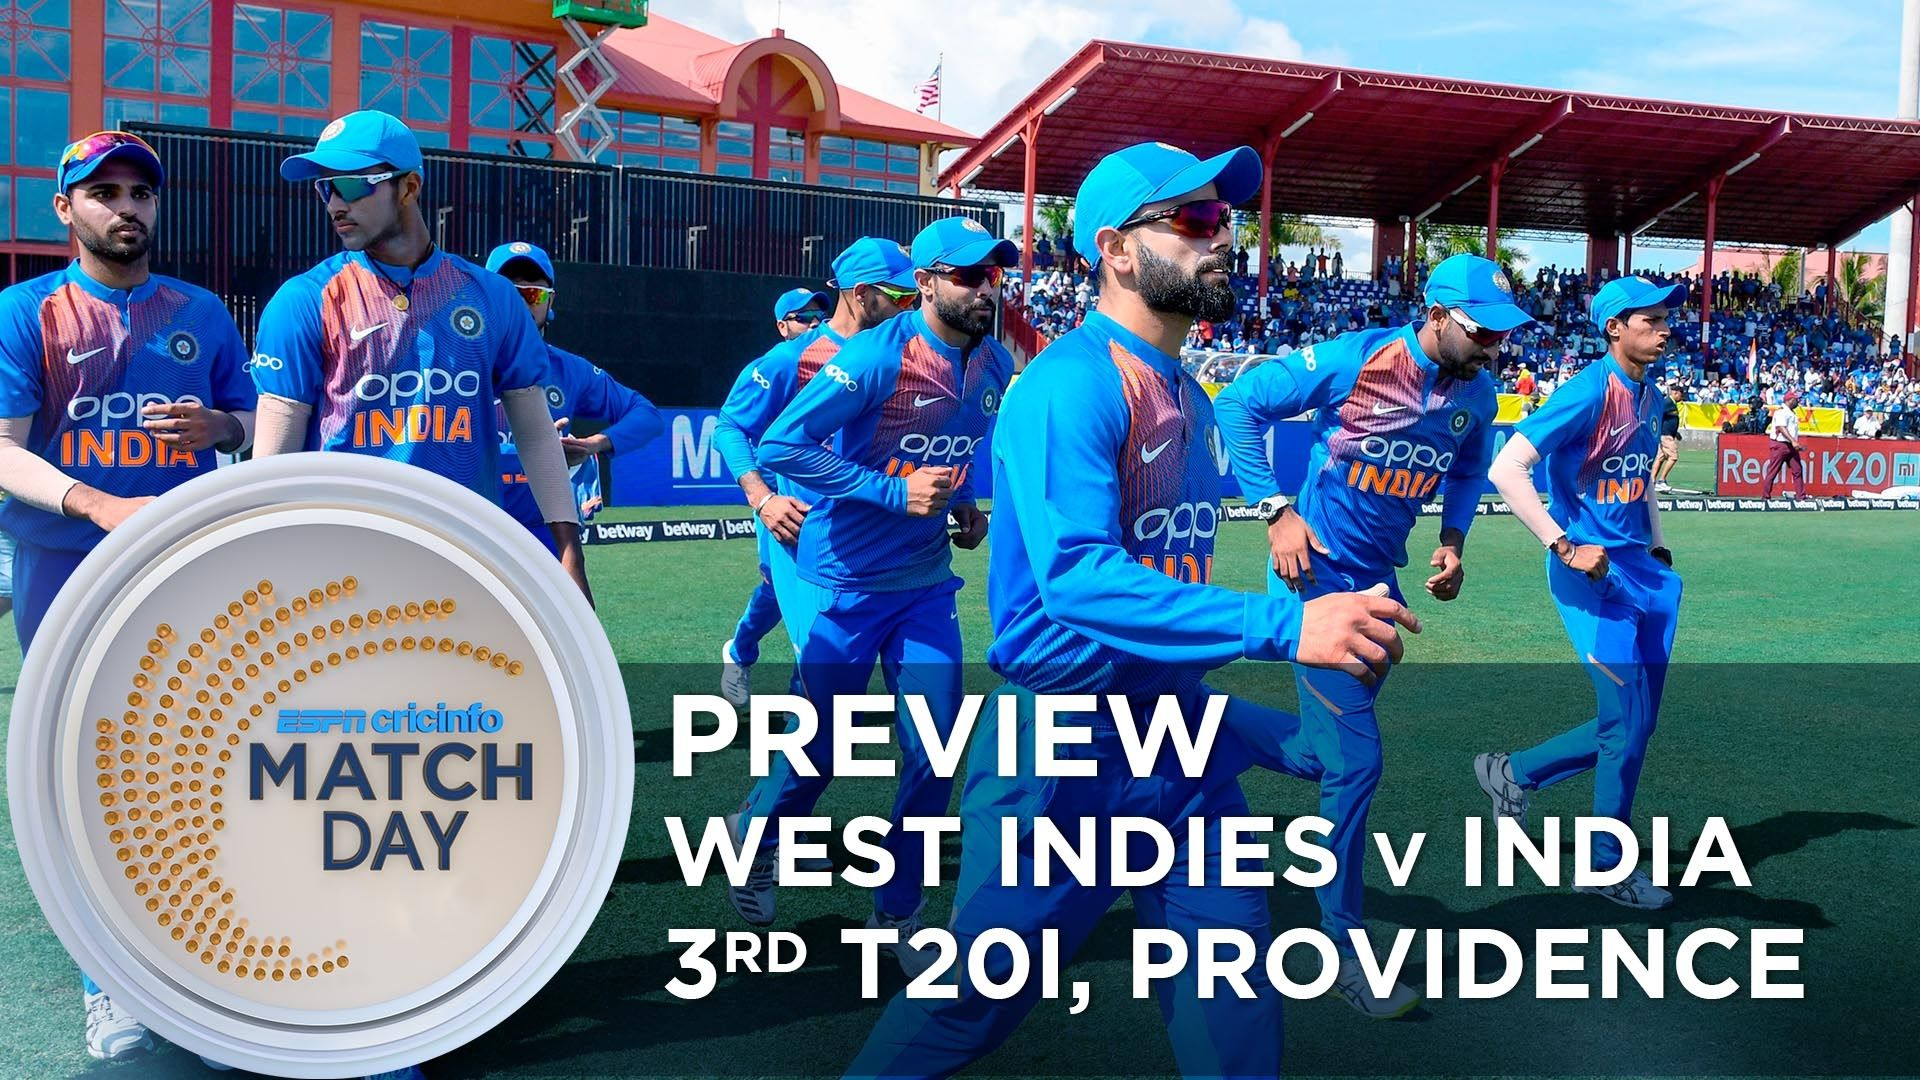 Match Day : West Indies v India, 3rd T20I, Providence